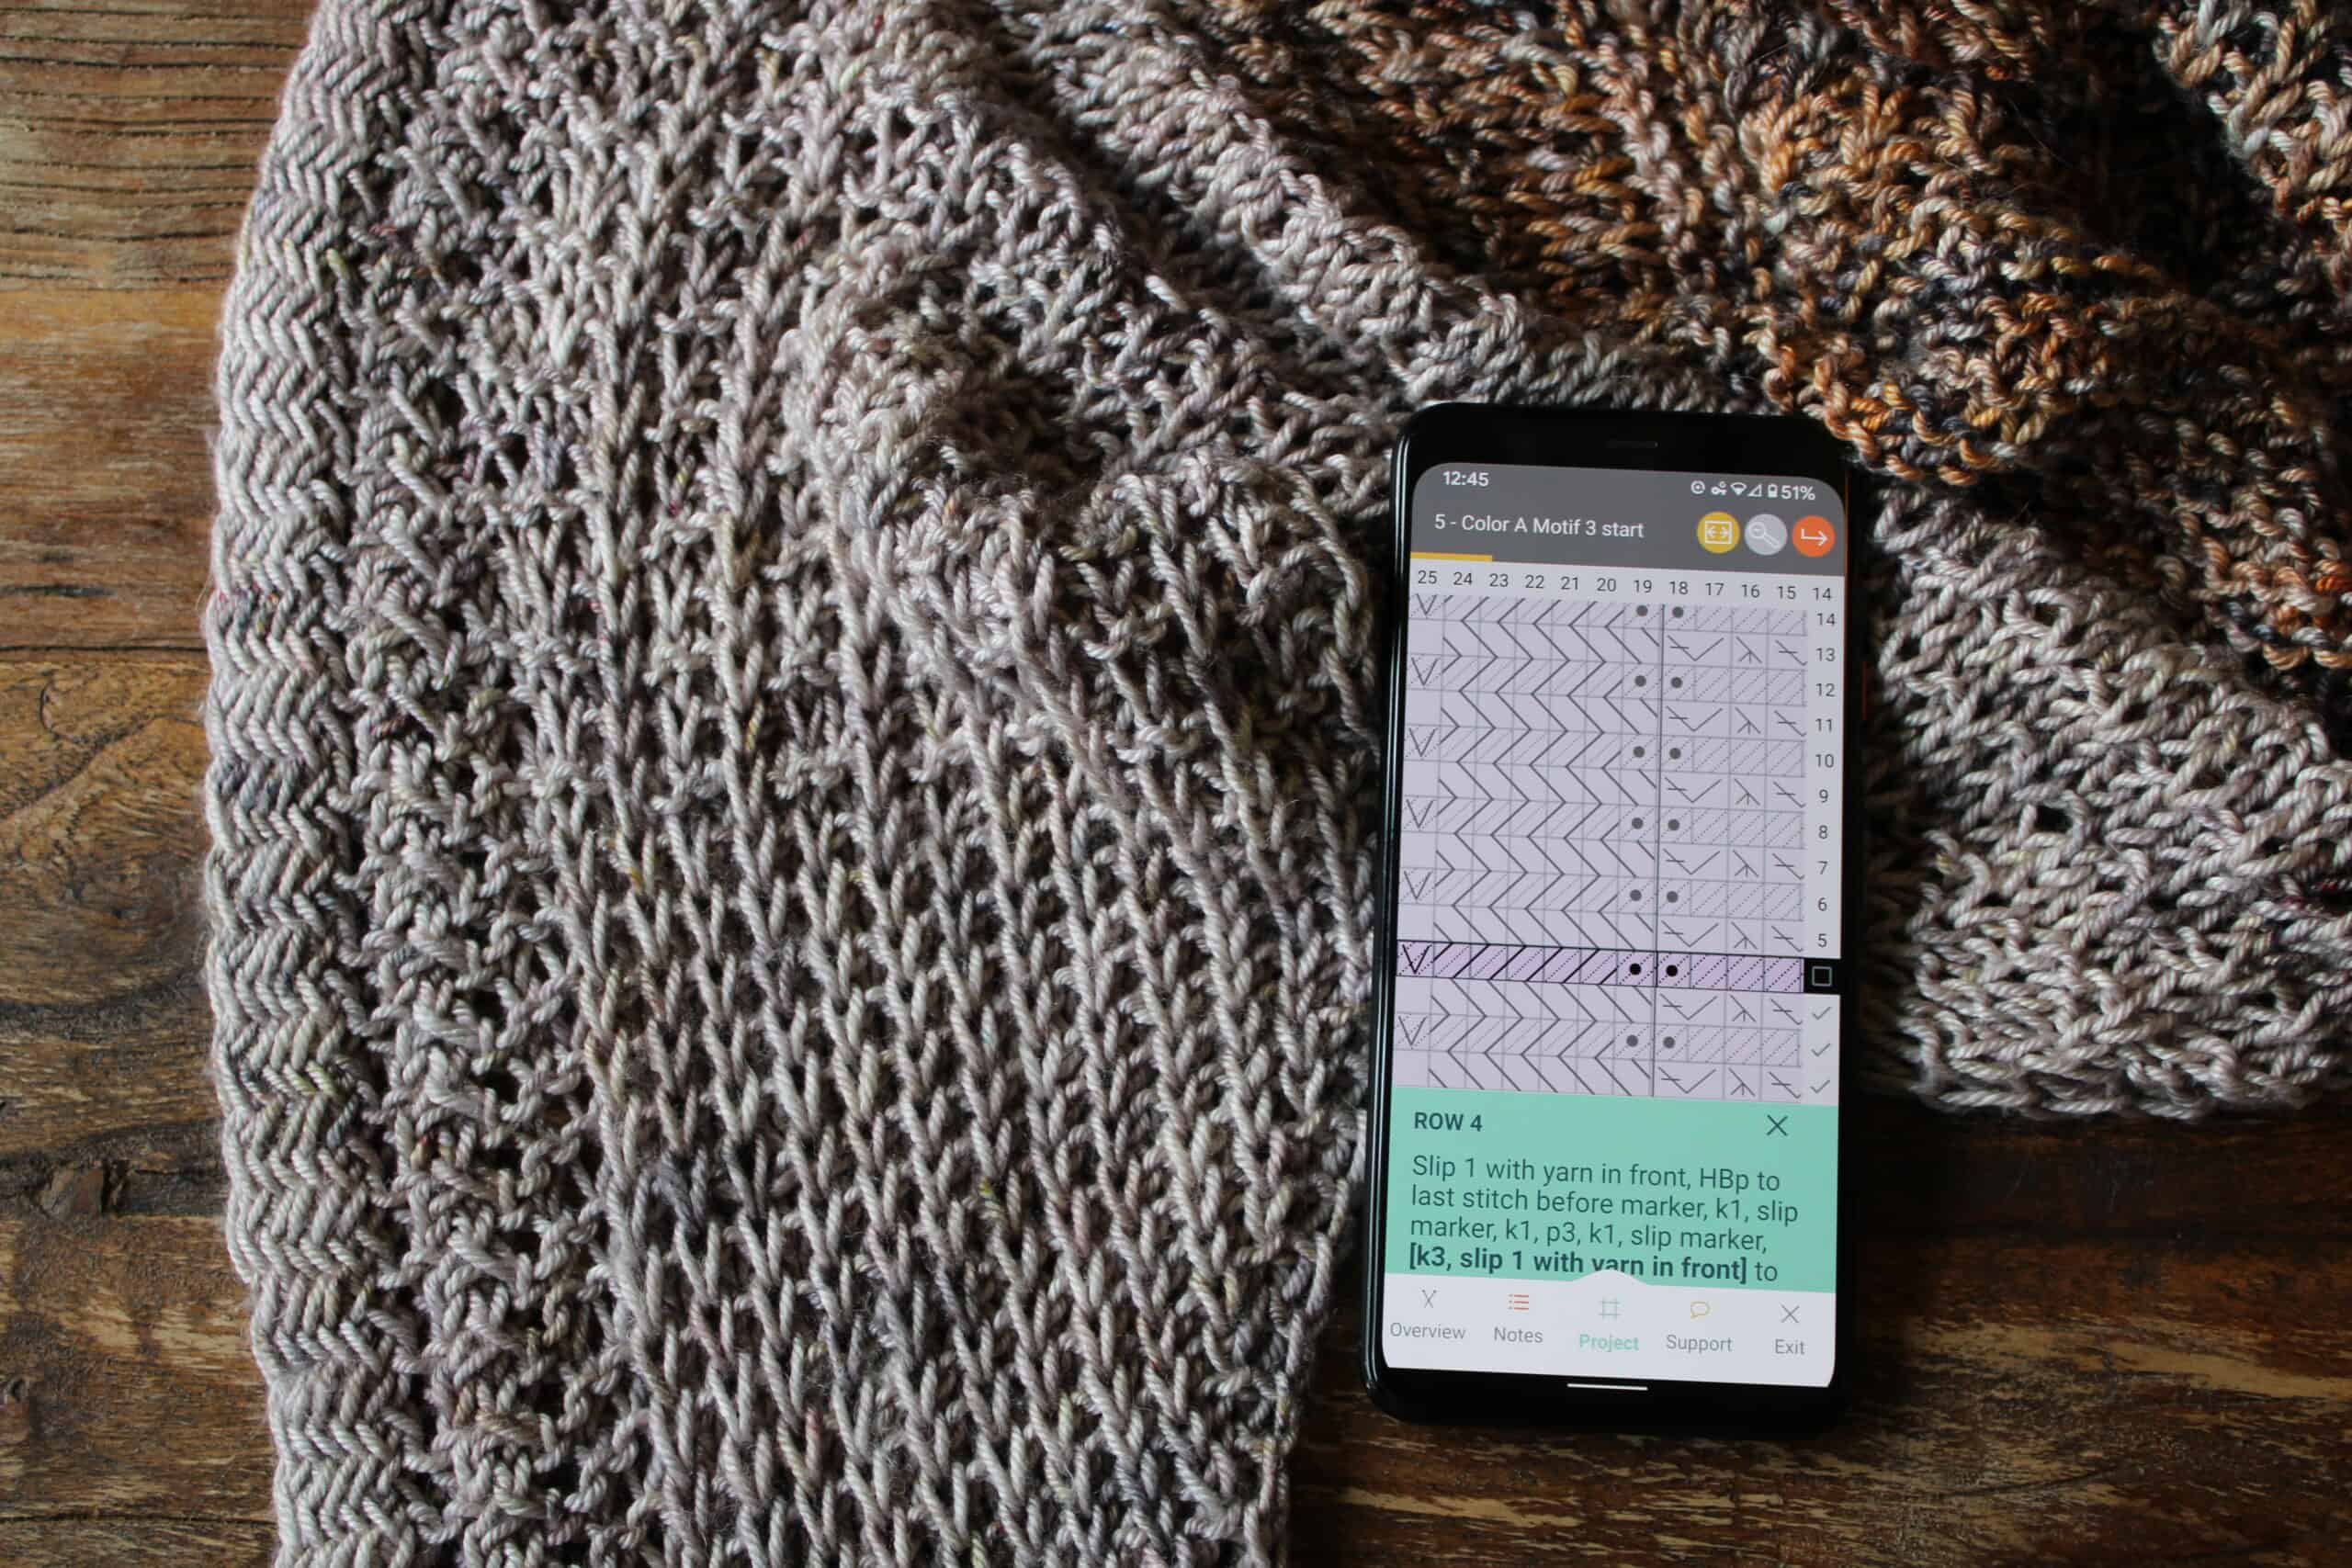 A smartphone next to gray knitting.